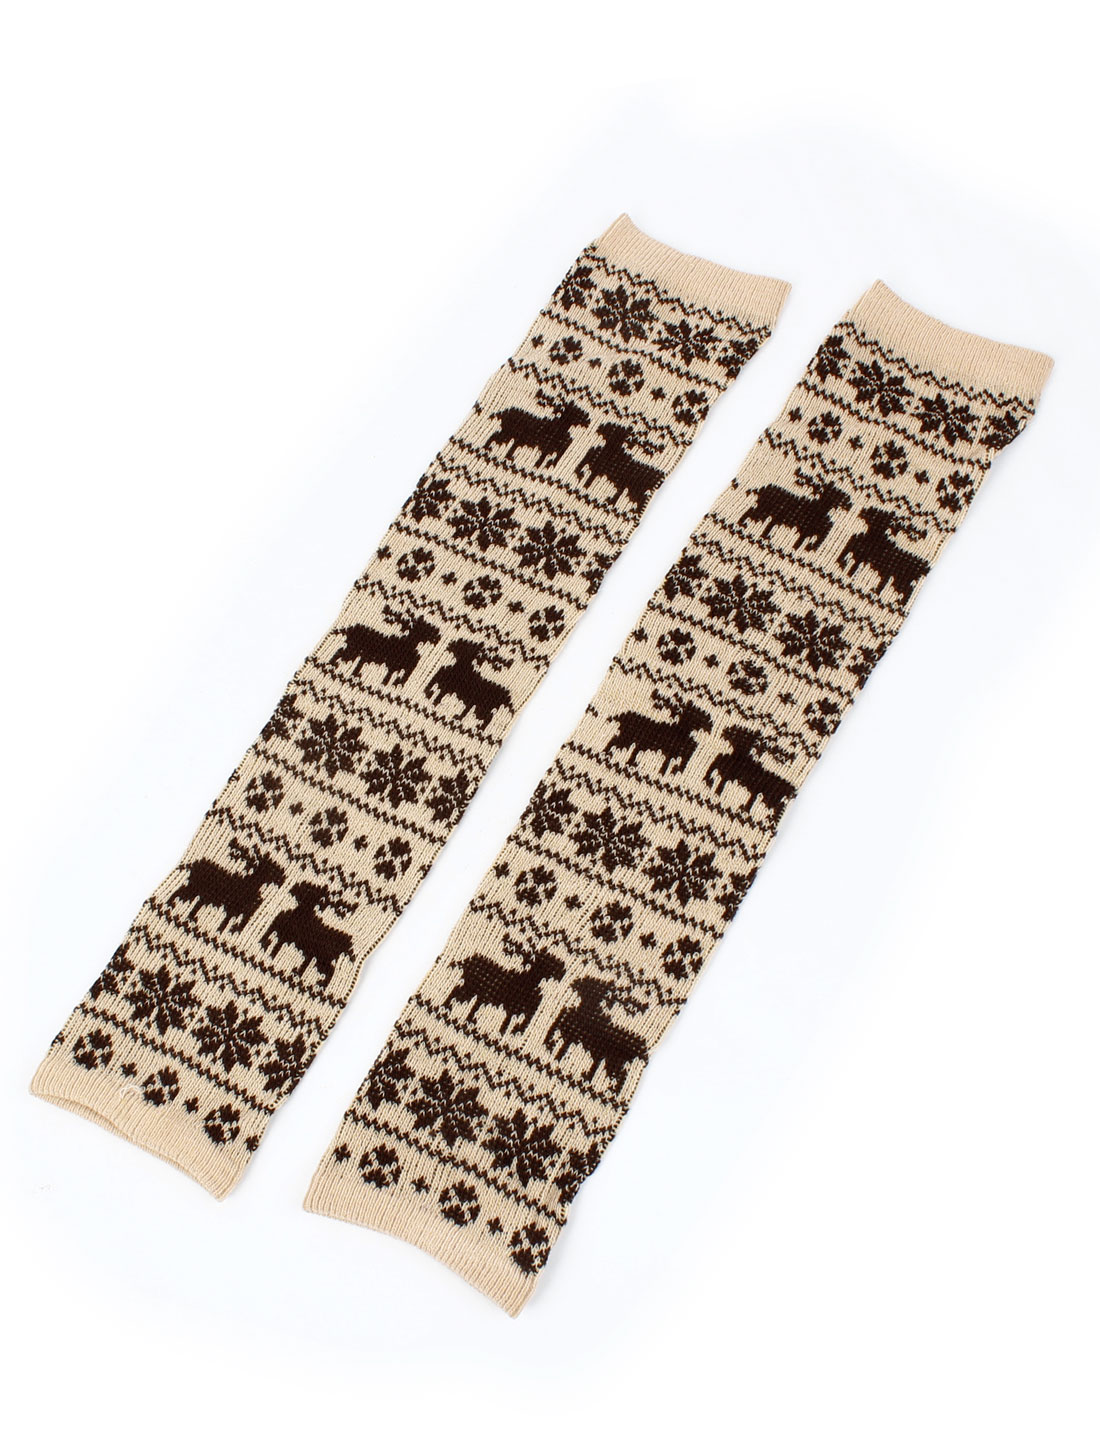 Nordic Printed Knee High Toeless Legging Warmers Beige Brown Pair for Ladies